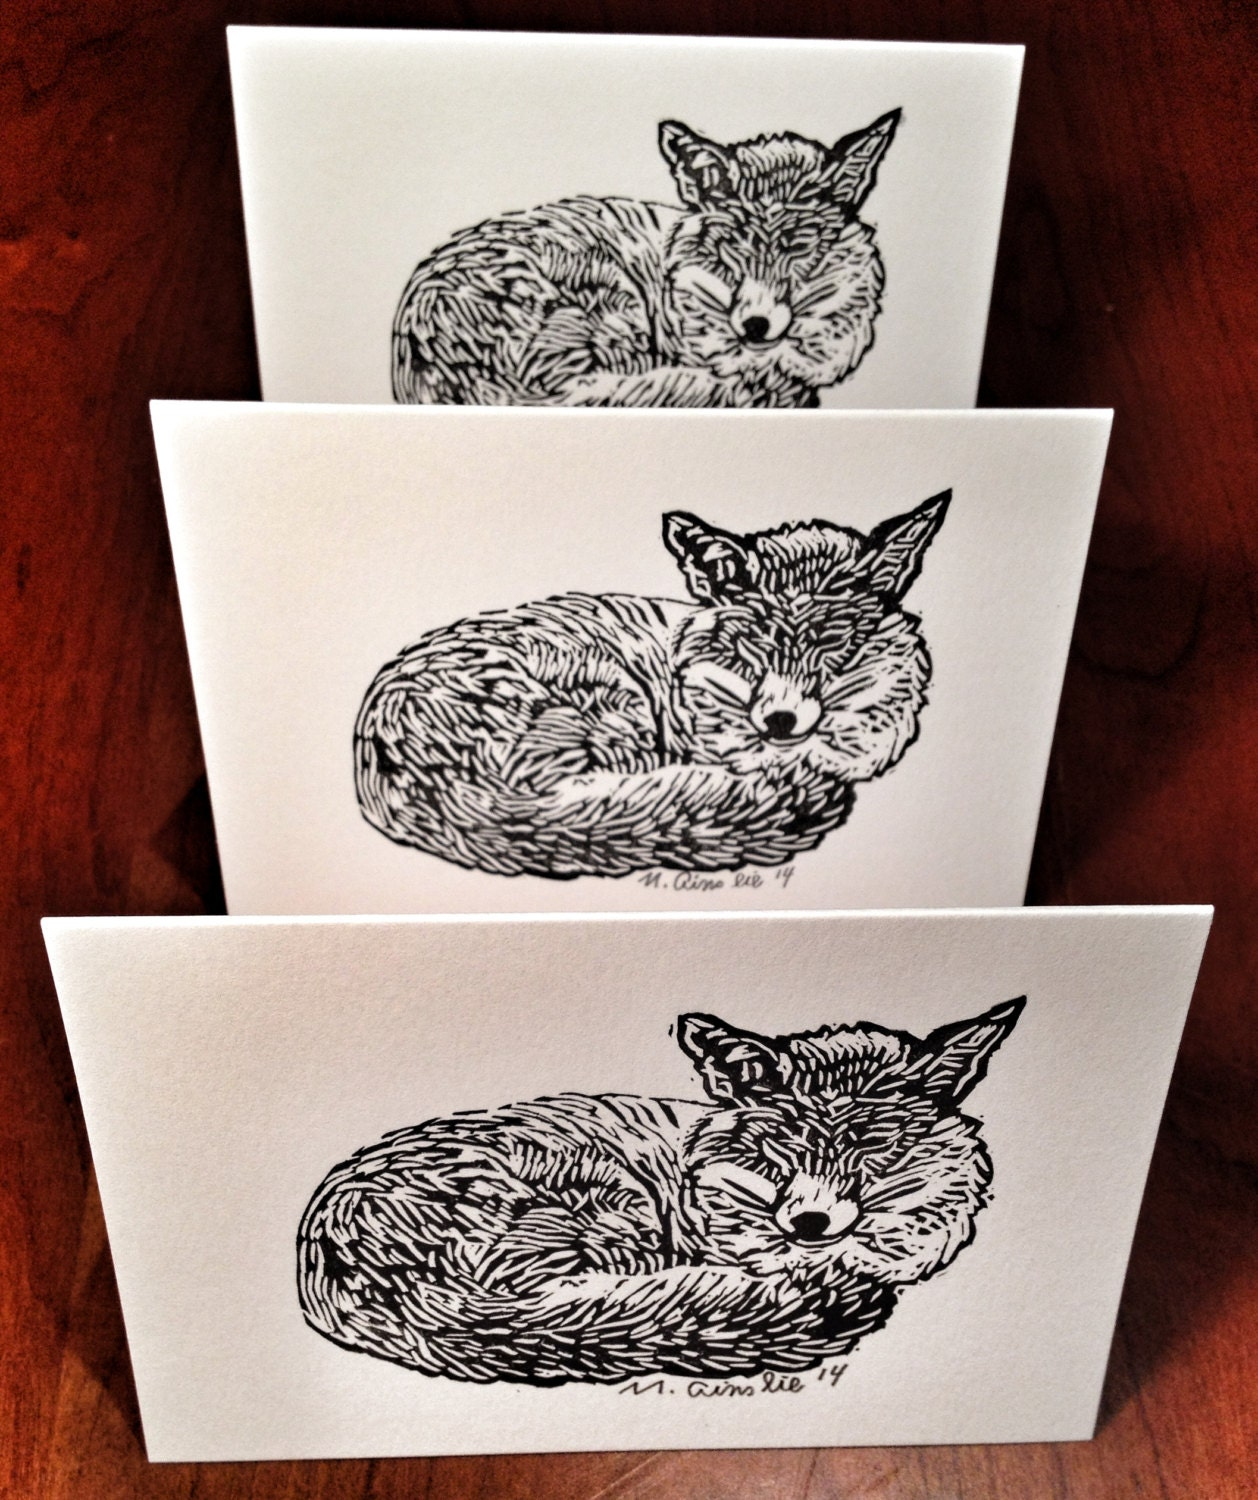 Sleeping fox, fox, linocut, lino cut, fablemountain, fox card, fox print, fox linocut, mark ainslie